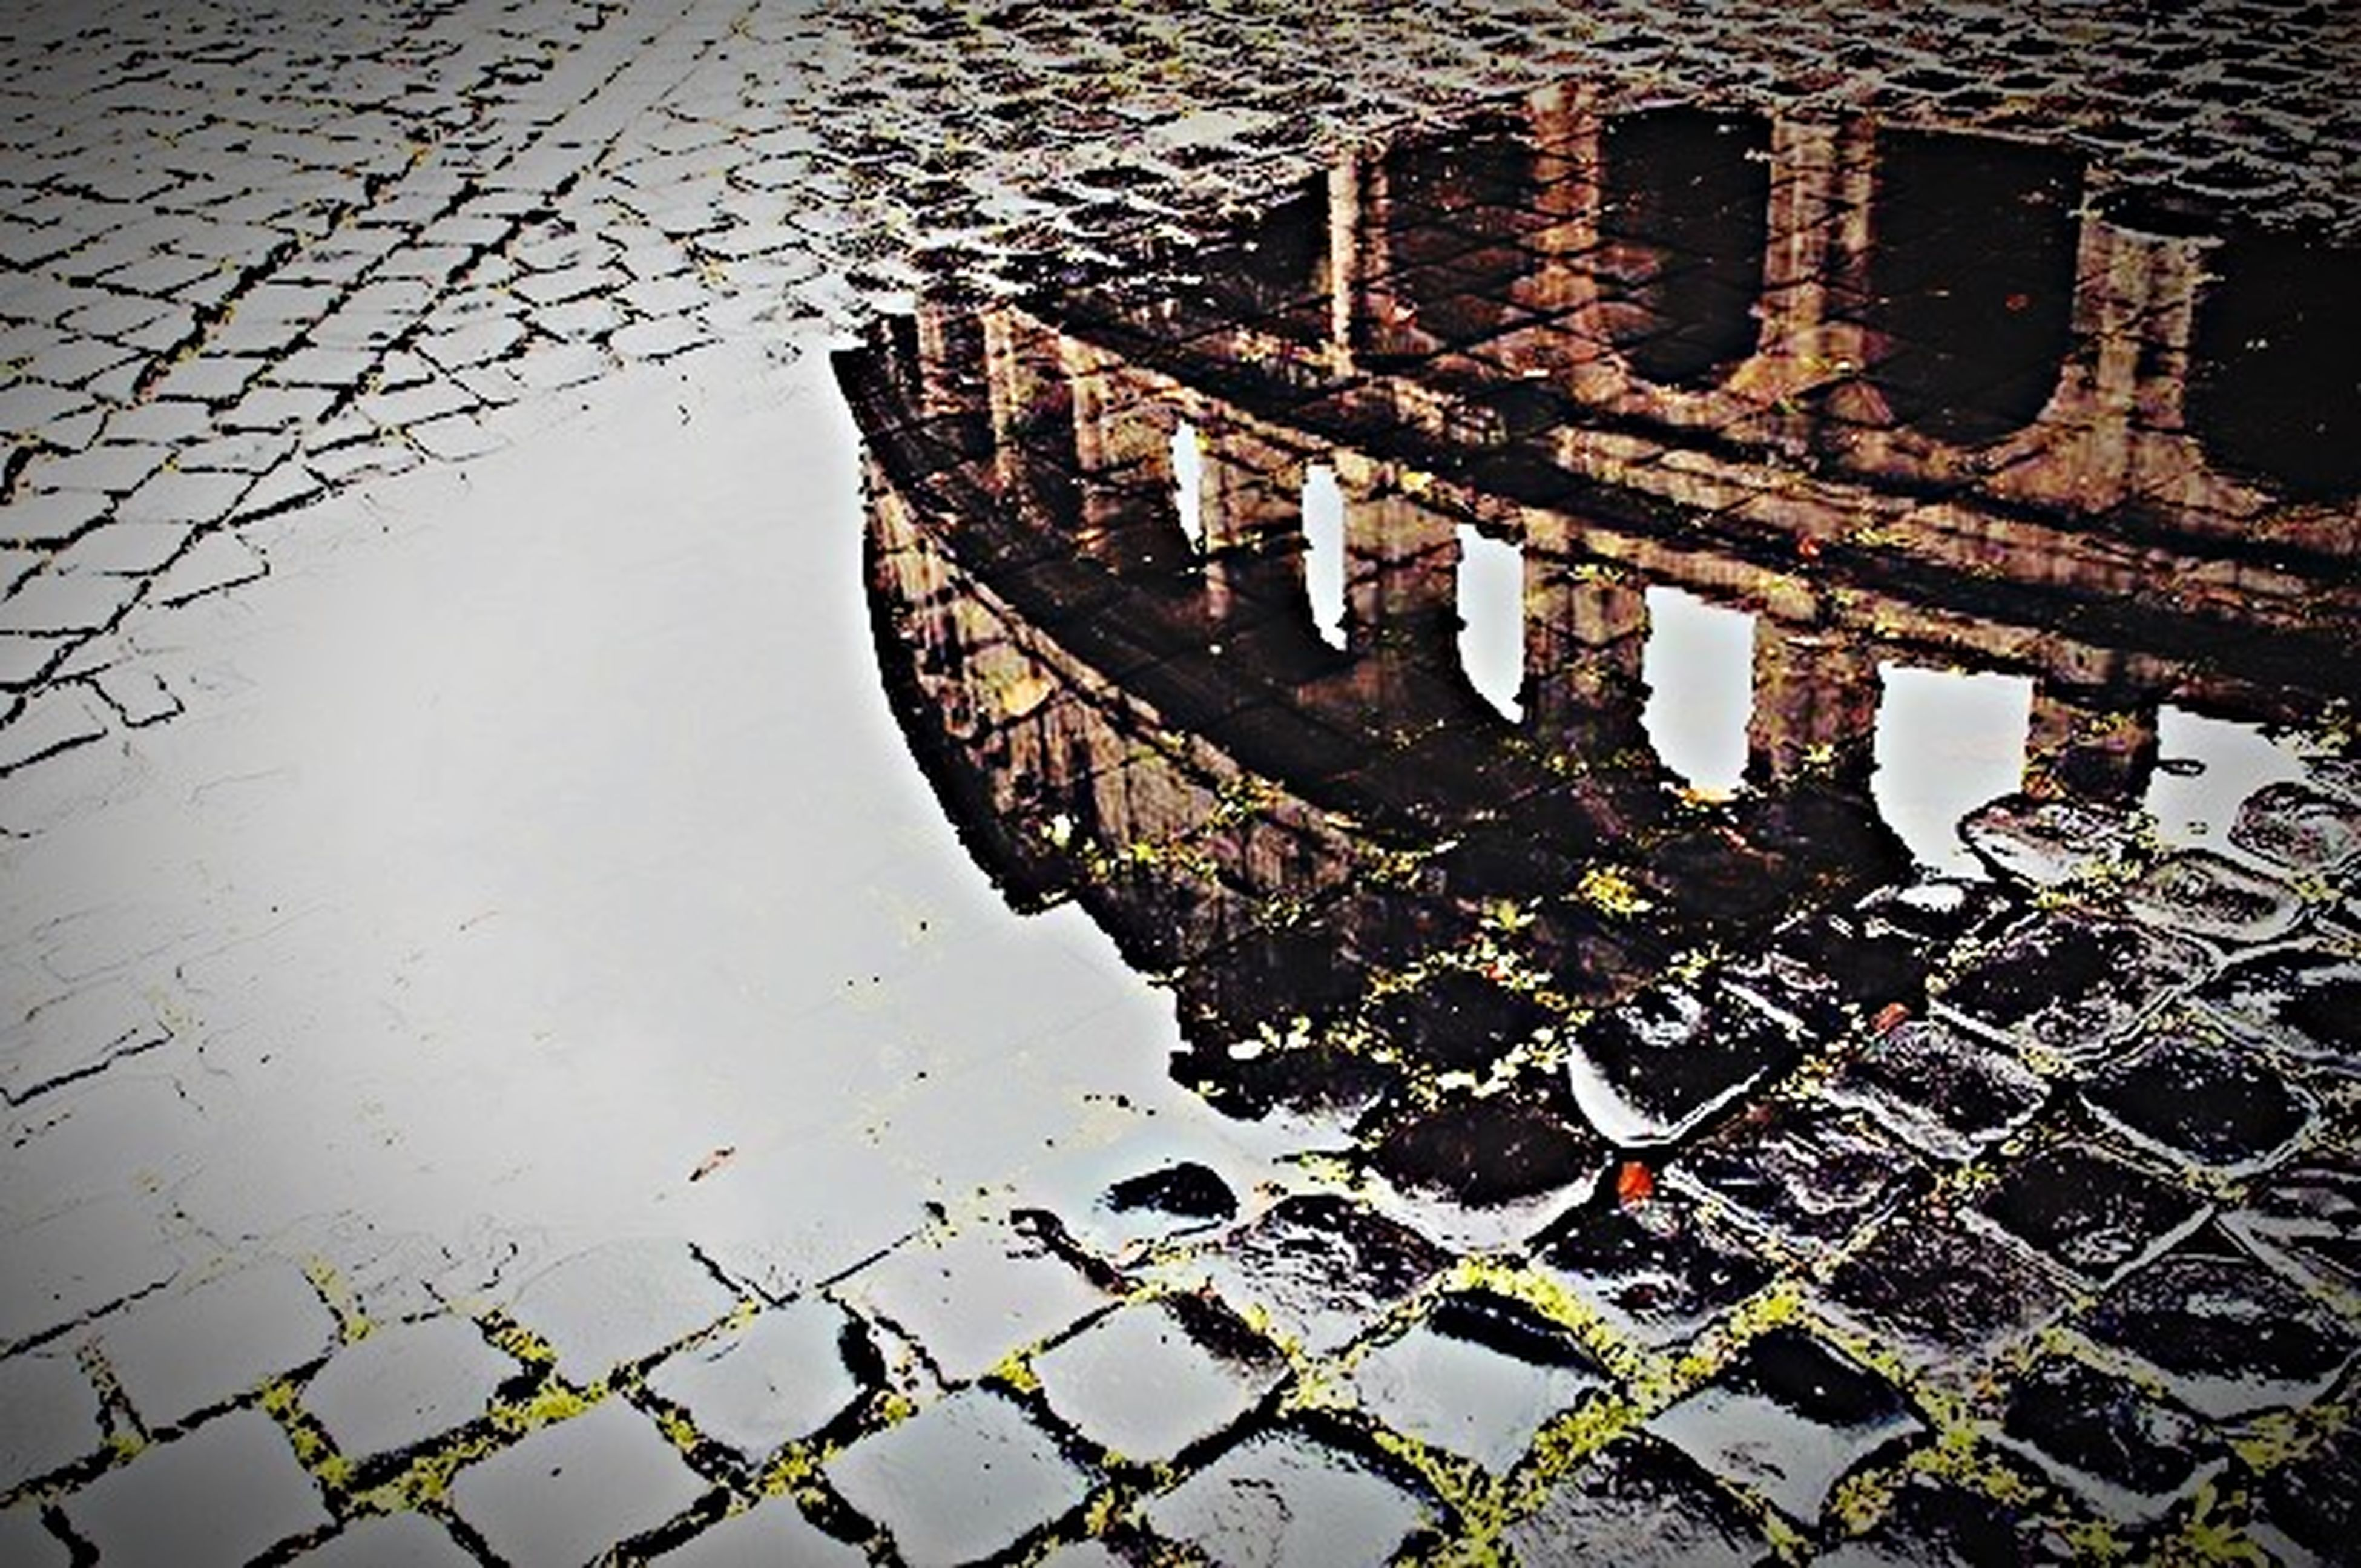 architecture, built structure, building exterior, water, high angle view, metal, day, outdoors, city, reflection, full frame, no people, building, pattern, canal, transportation, river, old, backgrounds, puddle